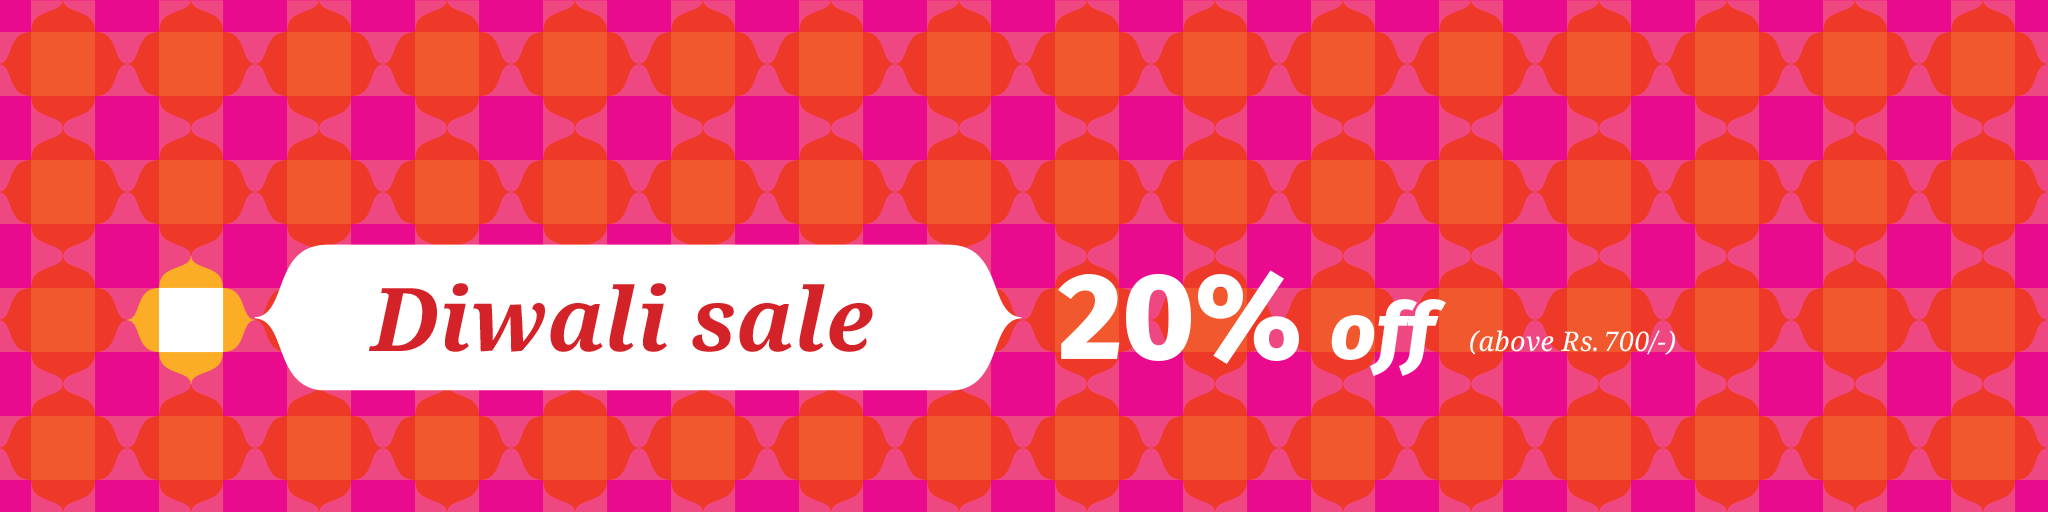 Diwali sale 20% on all products, hurry and buy what you can!